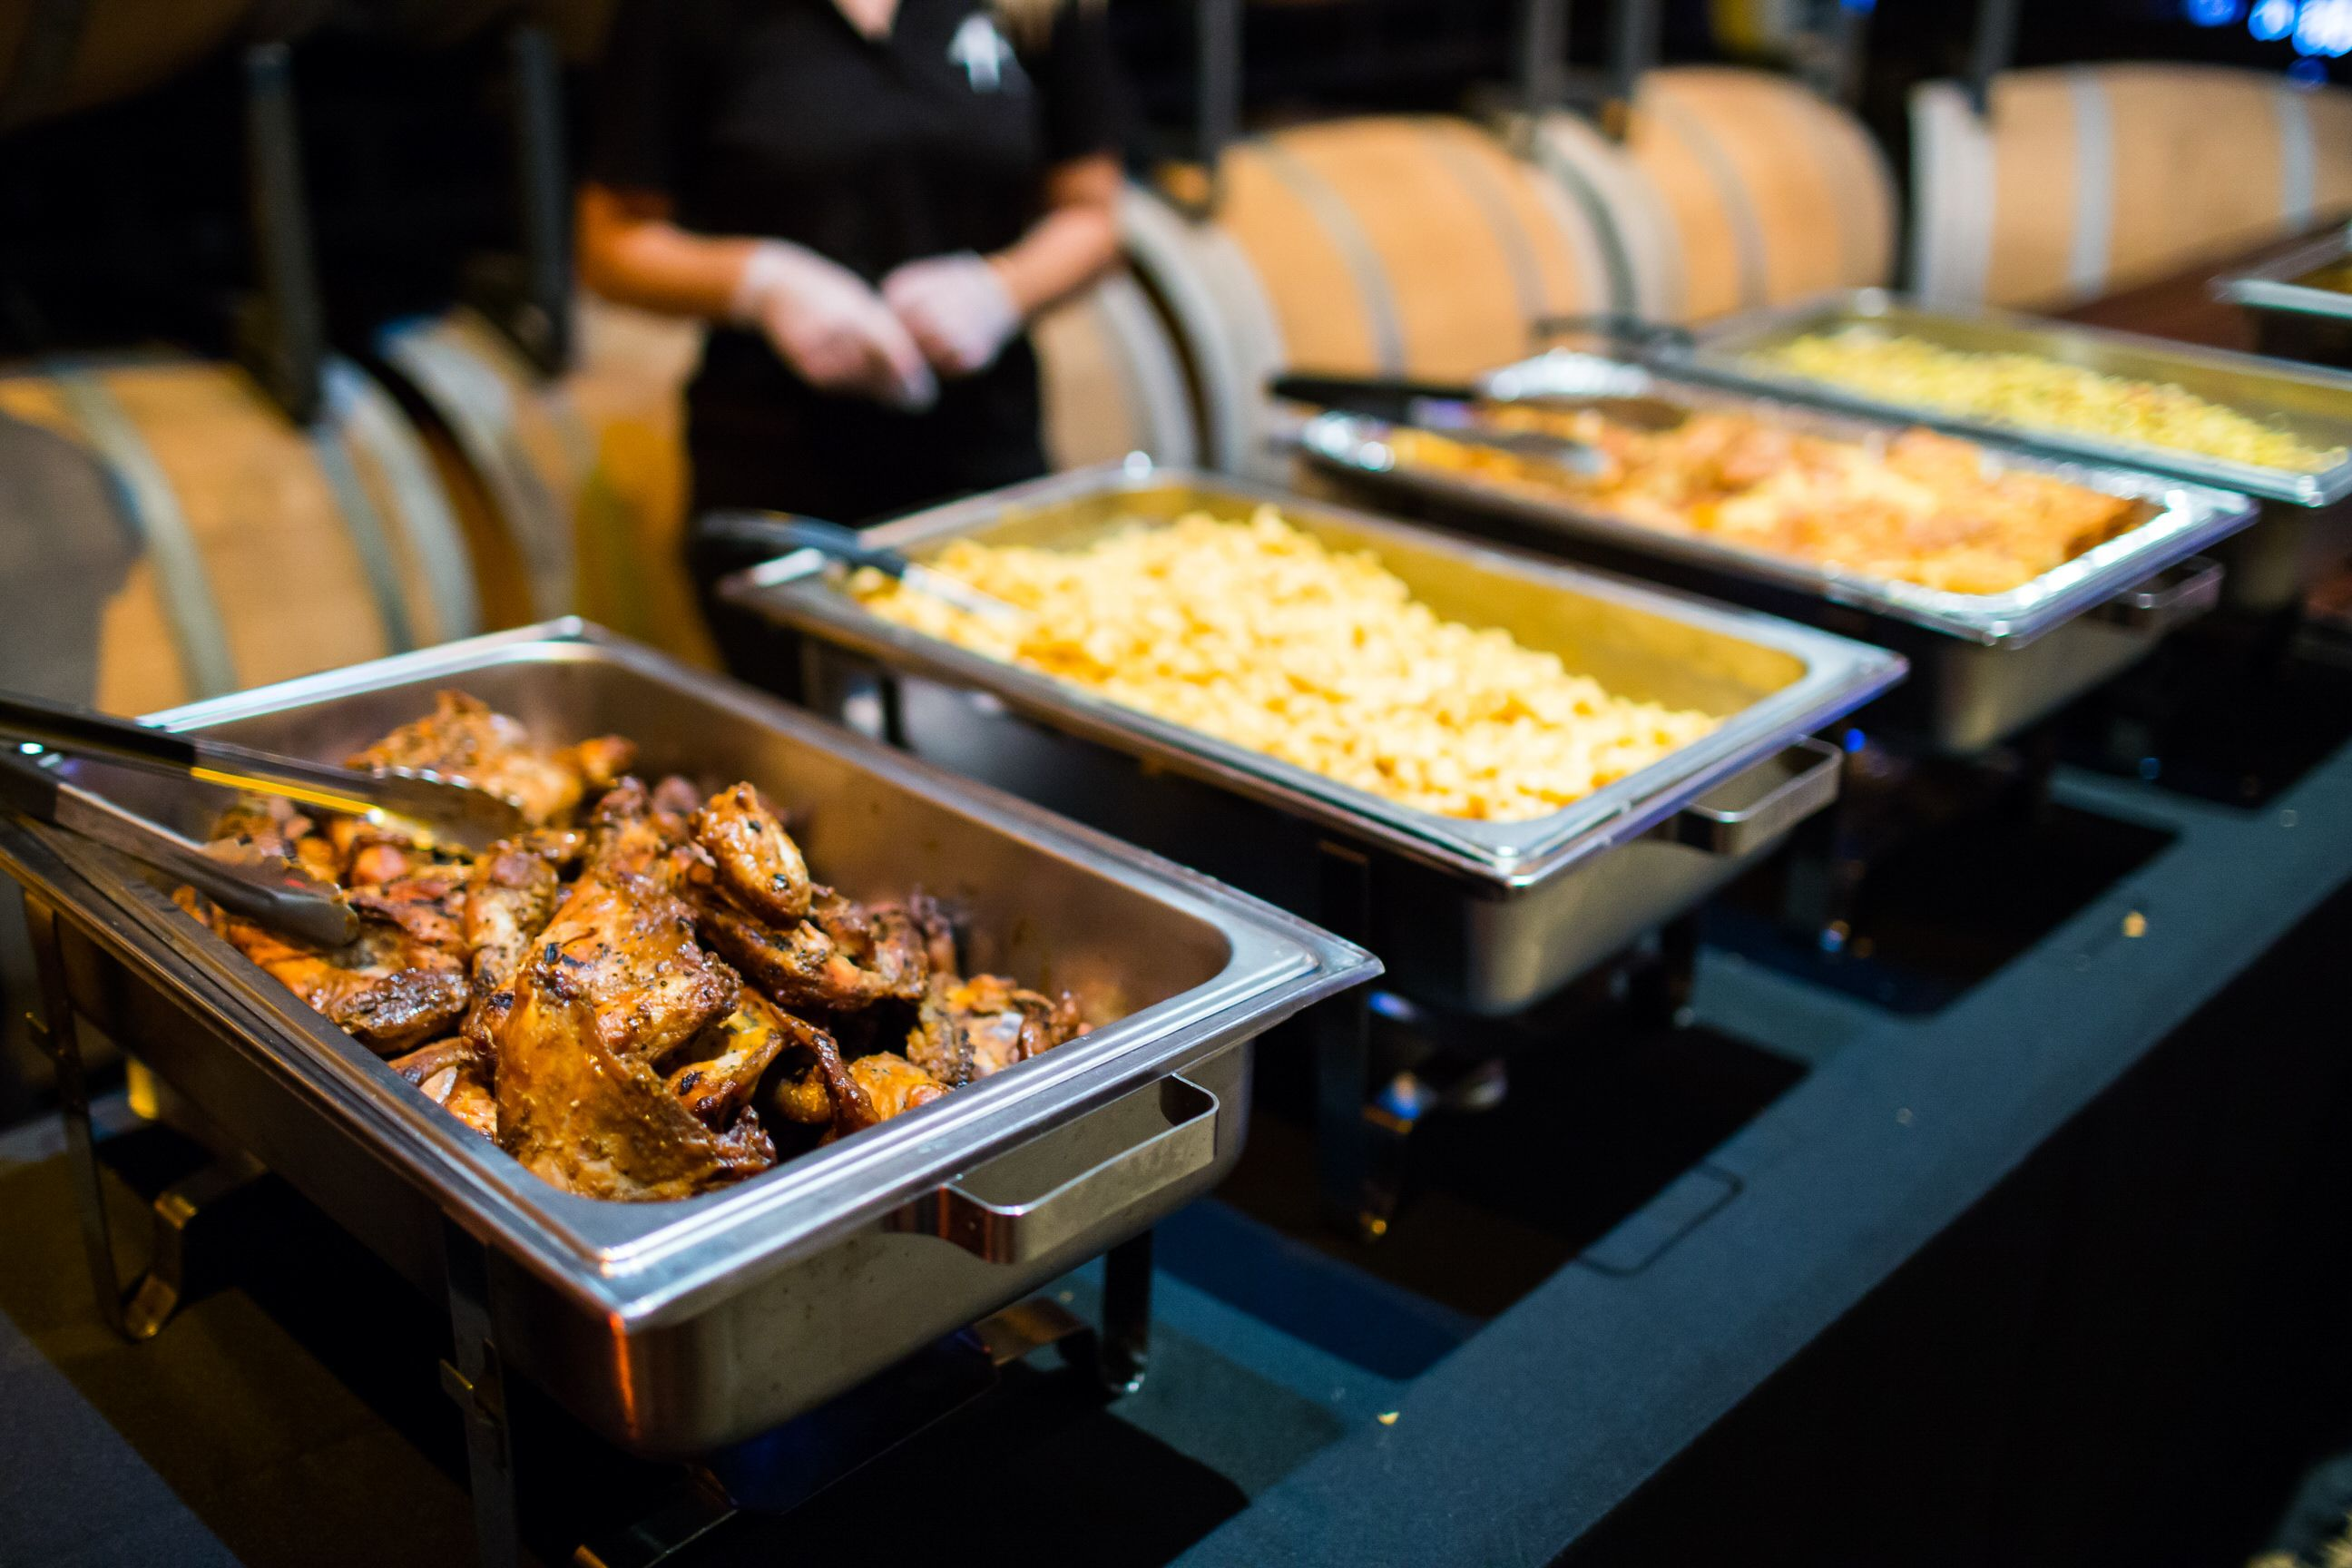 Catering By 4rivers Smokehouse Orlando Fl Photography By Lotus Eyes Photography Orlando Fl Catering Wedding Catering Eye Photography